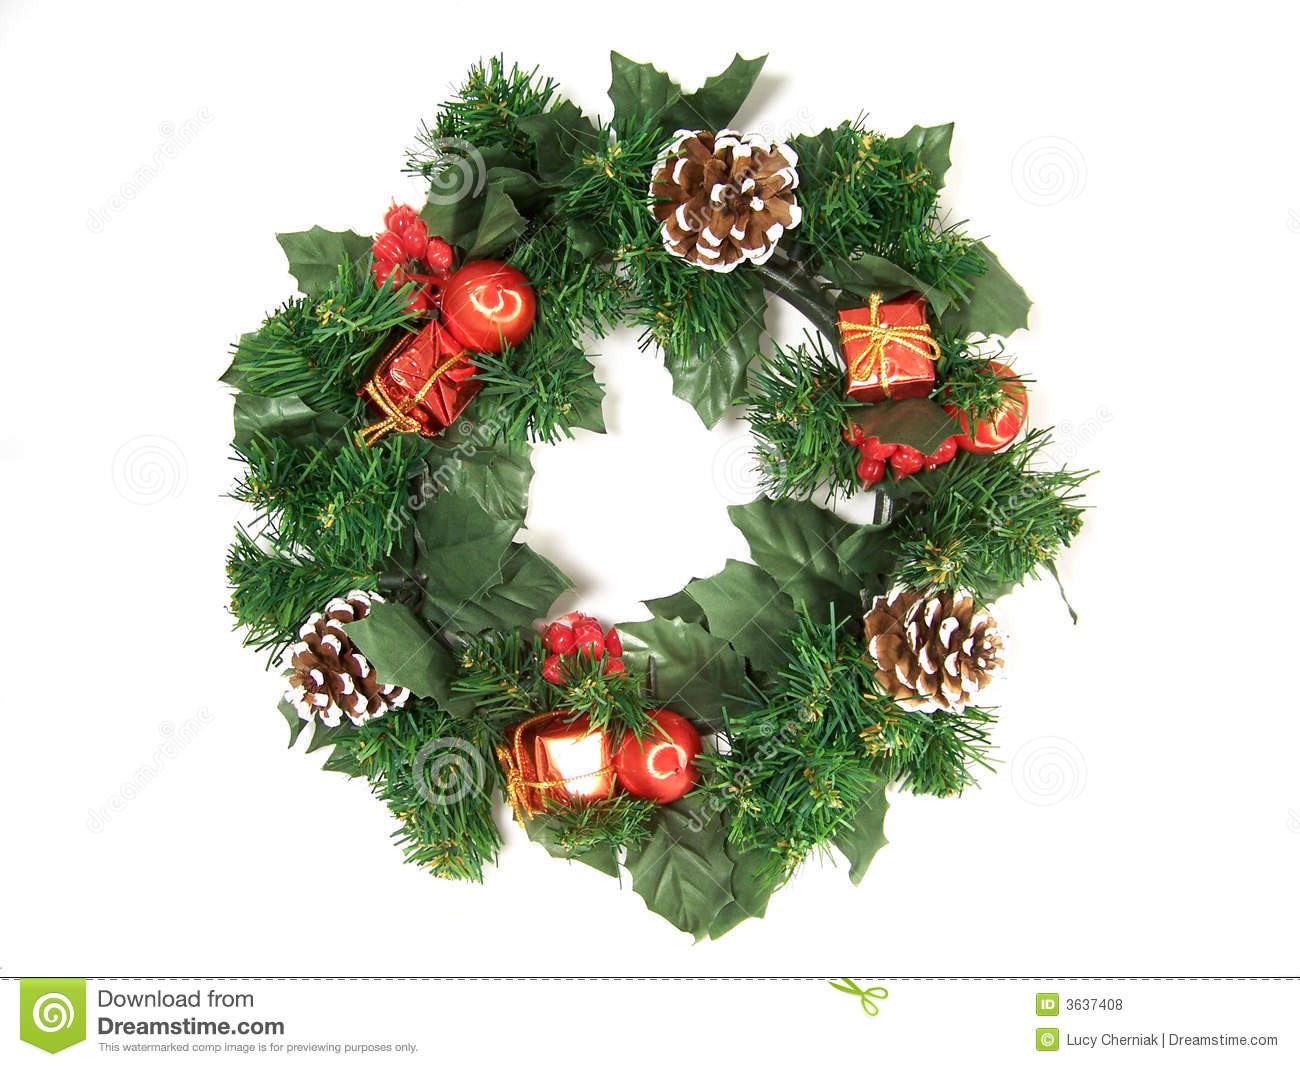 christmas decorations garland 3637408 - Garland Christmas Decor